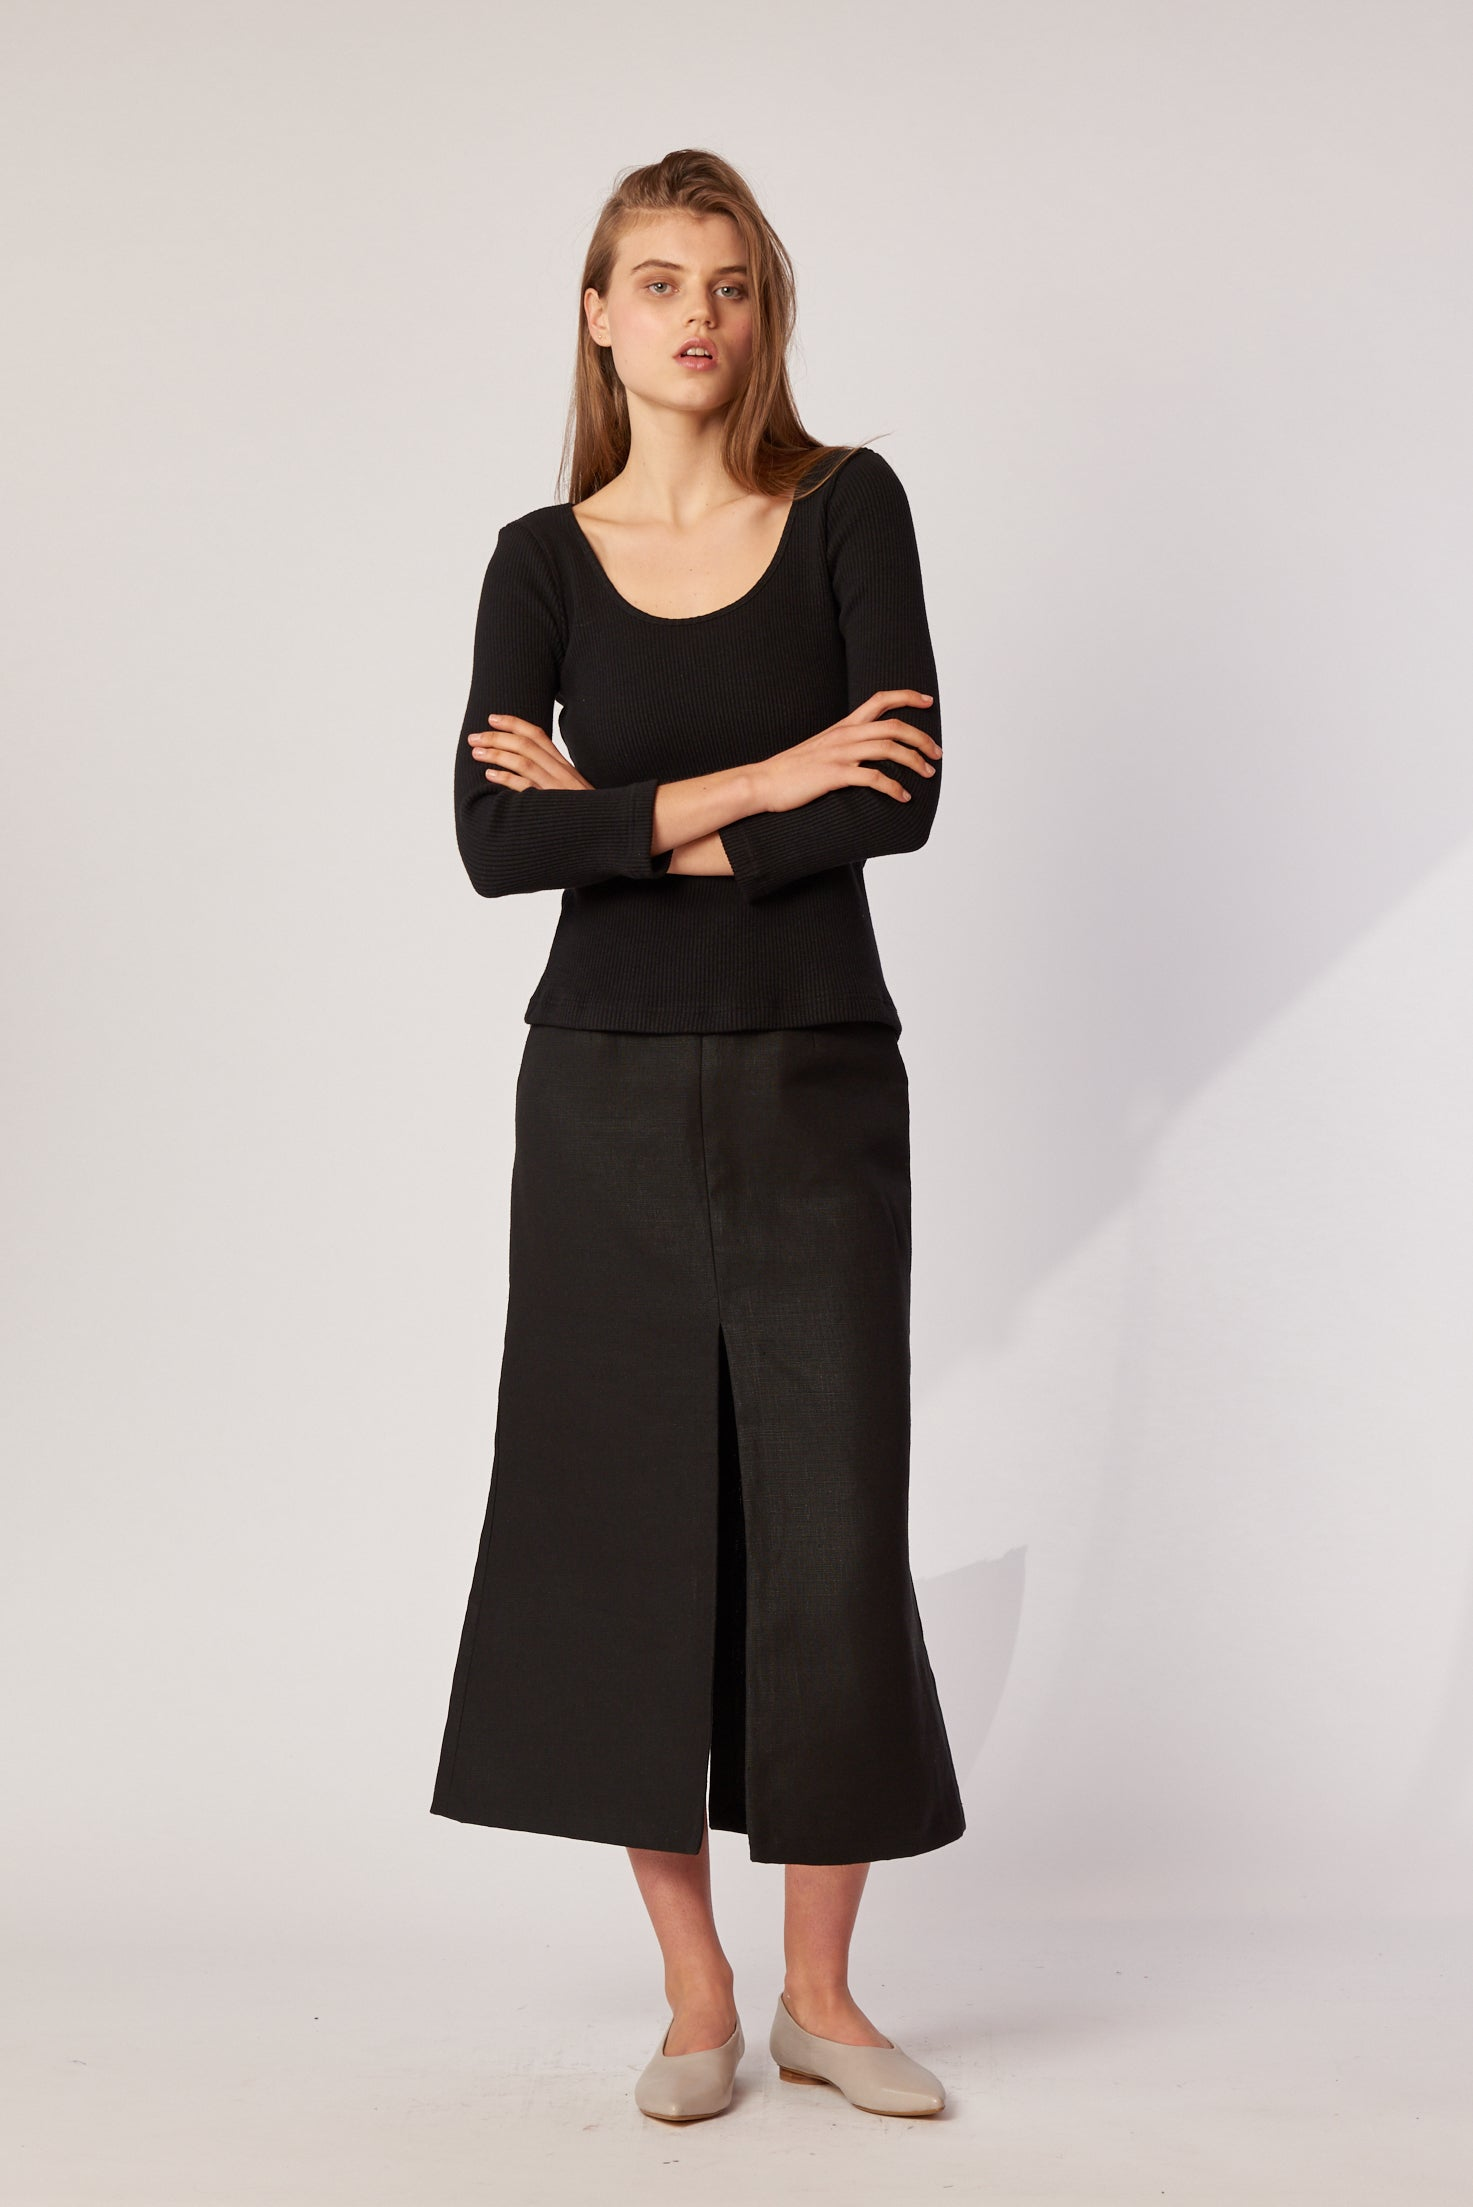 Margot Skirt - Black Hemp